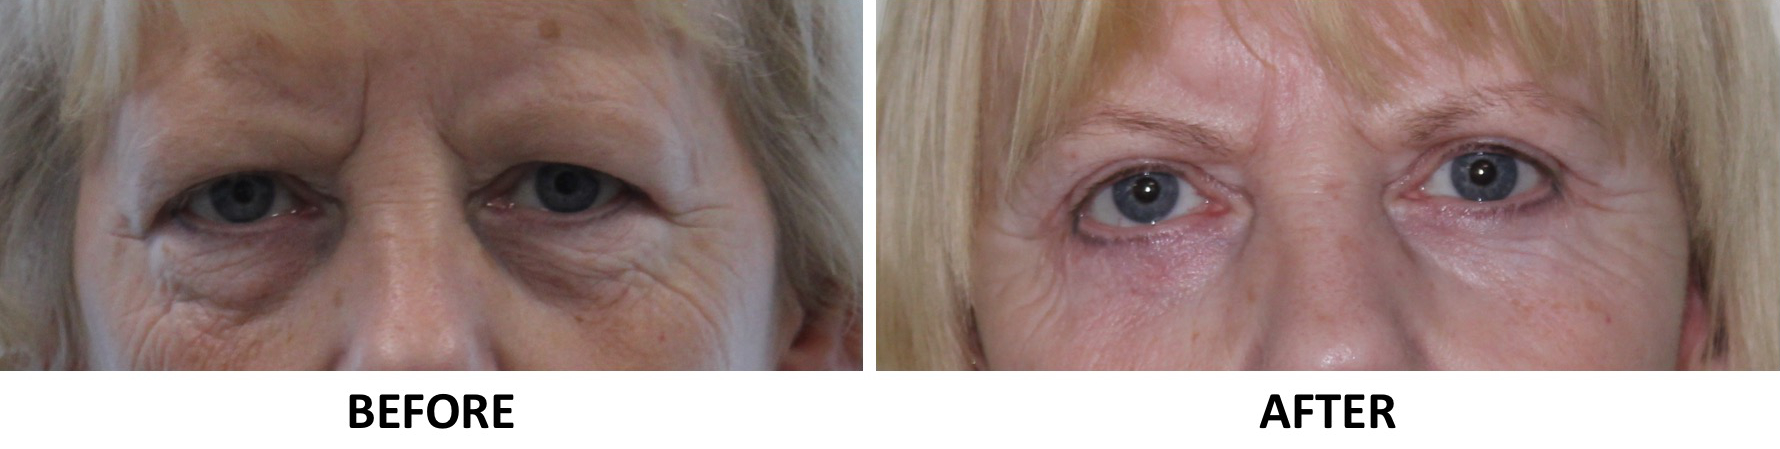 Upper eyelid surgery, lower eyelid surgery AP view